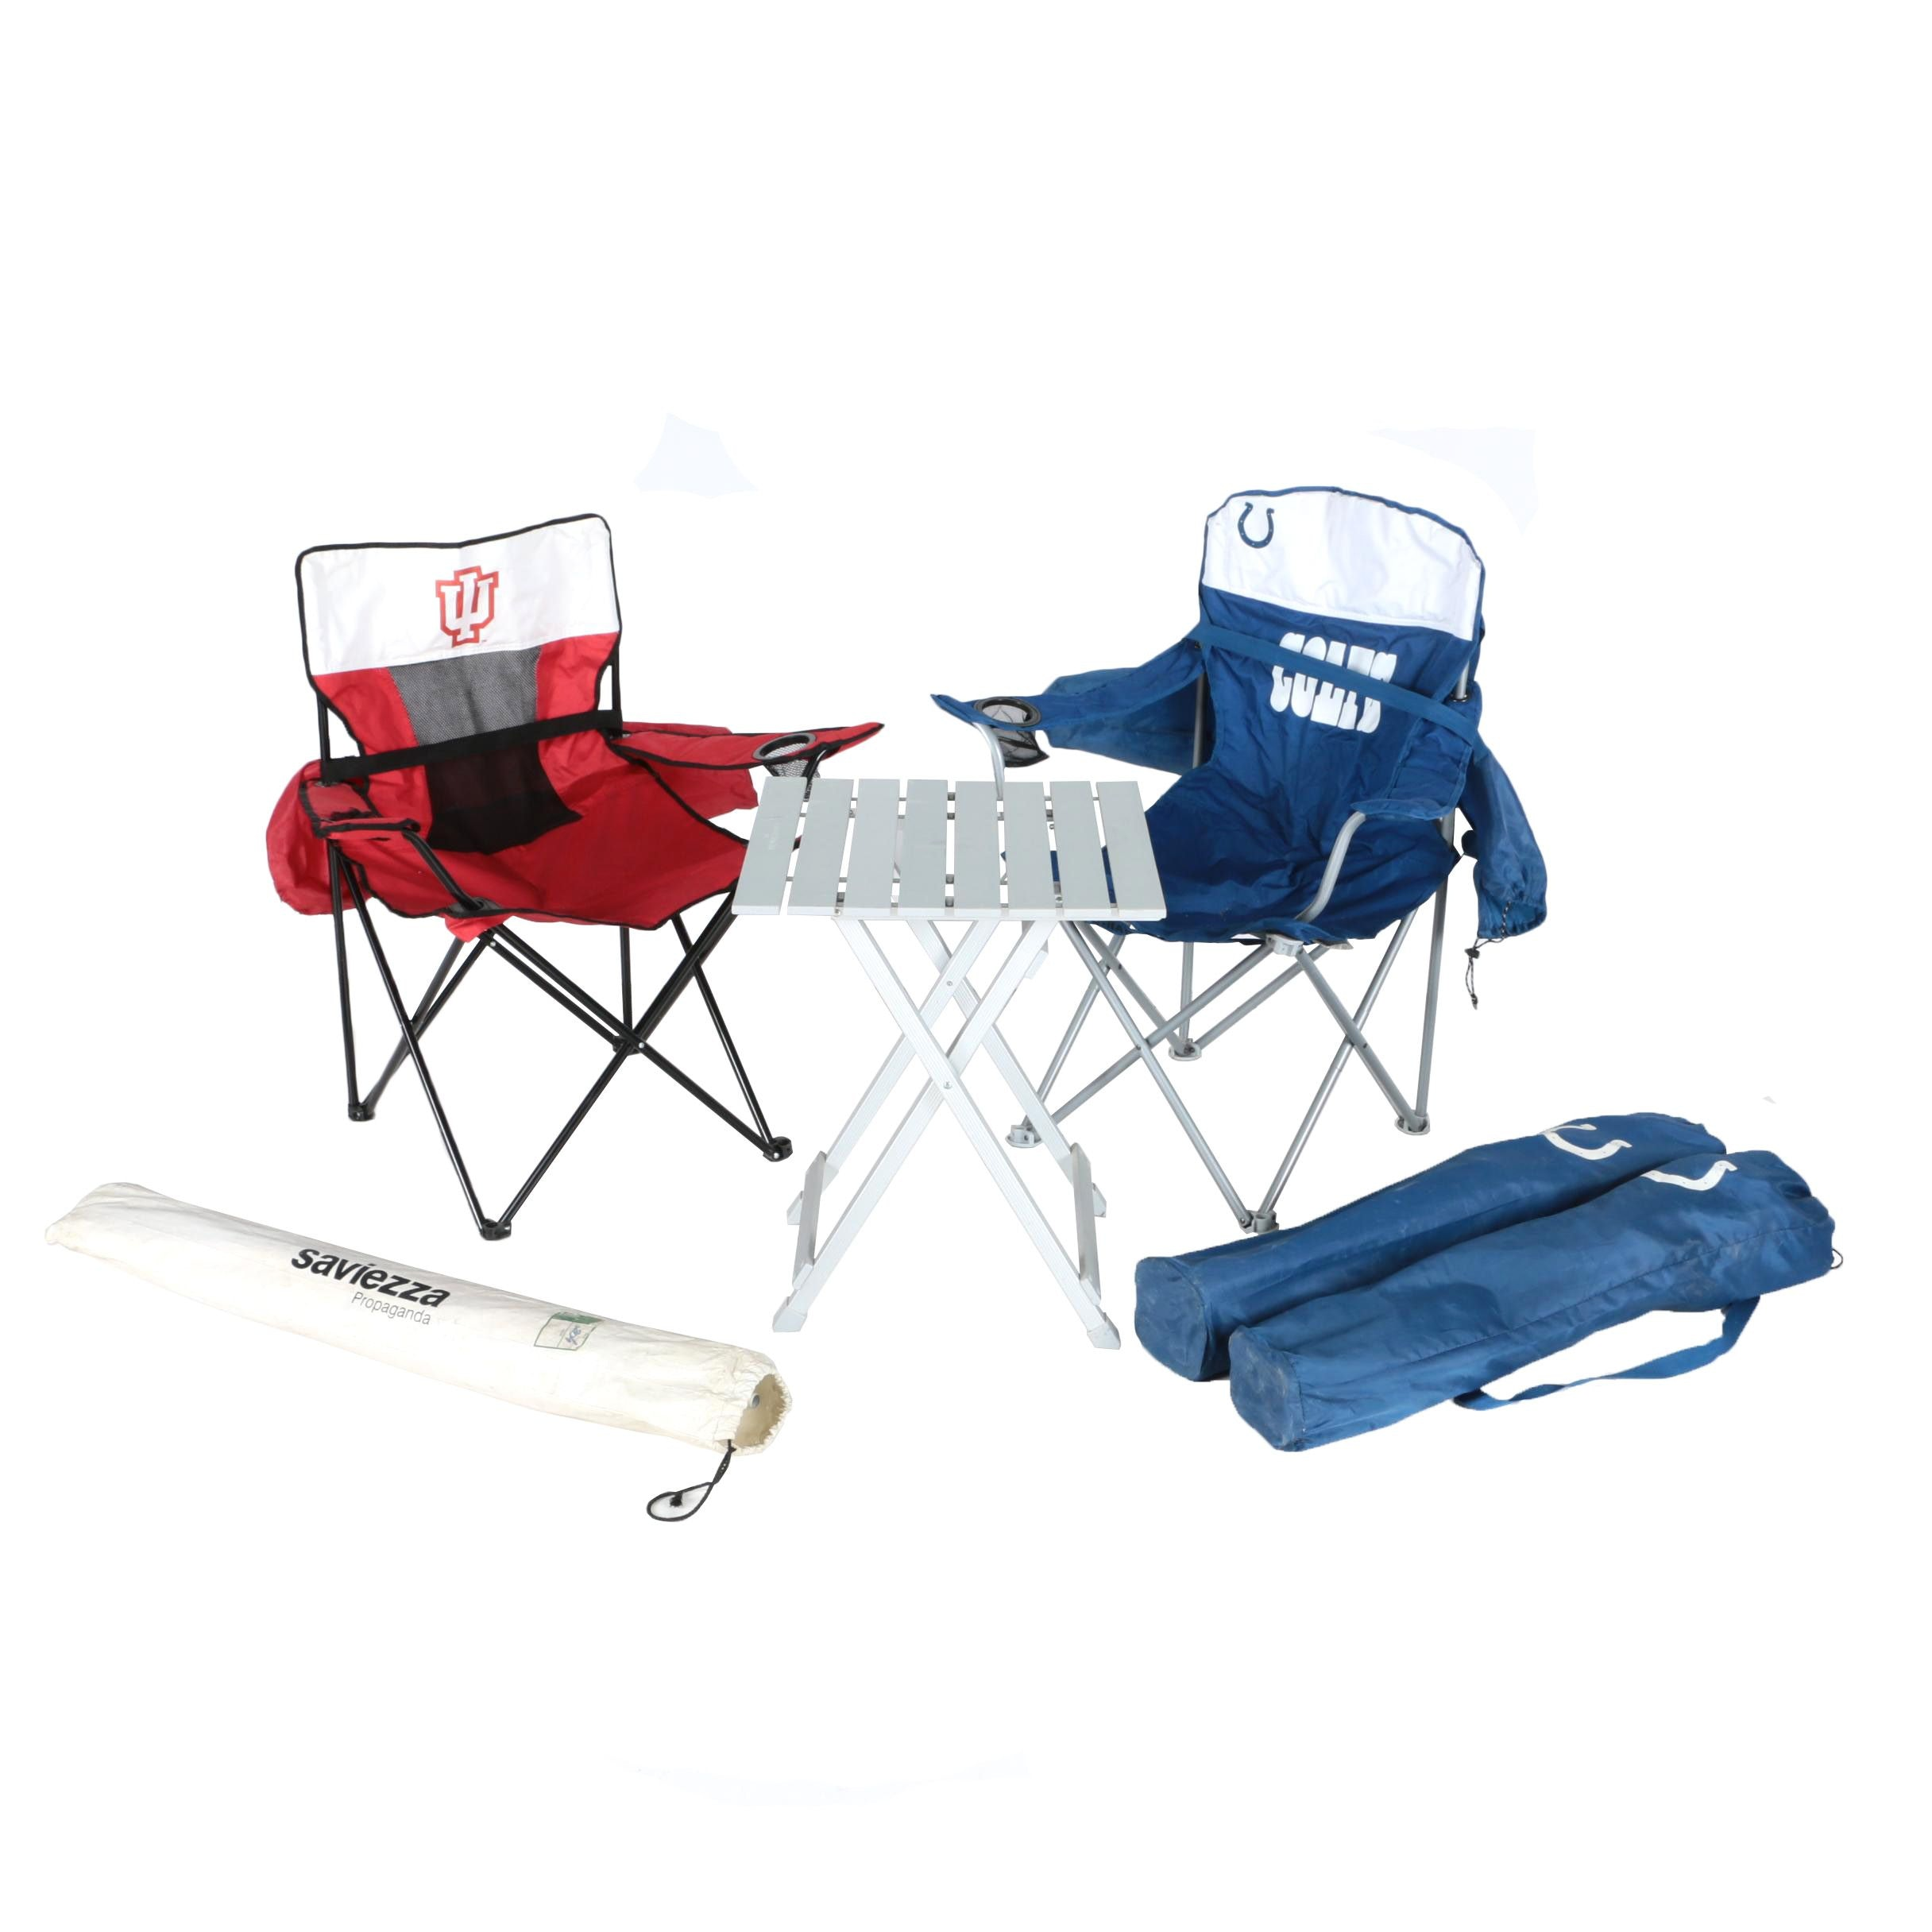 Colts Tailgate Chairs With Table And Umbrellas | EBTH